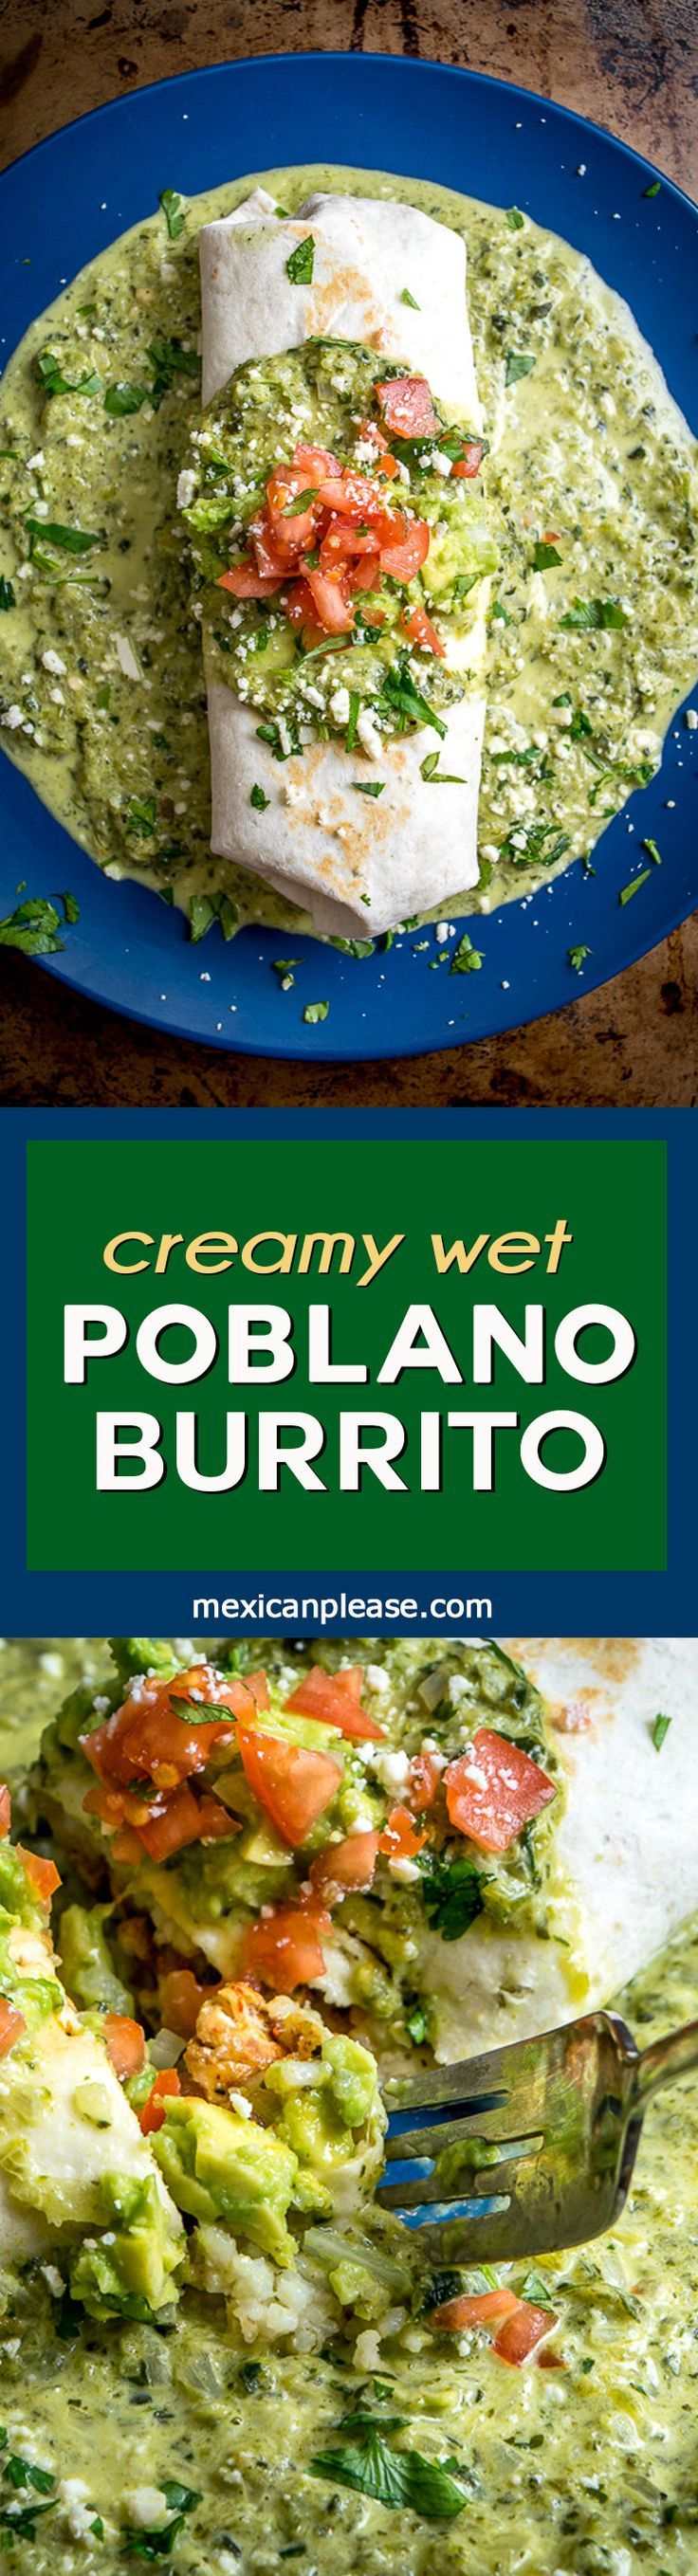 Think of this as the ultimate comfort food.  A chicken guacamole burrito swimming in a creamy, goopy poblano sauce with otherworldly flavor.  Don't forget to roast the poblano peppers.  So good!  http://mexicanplease.com